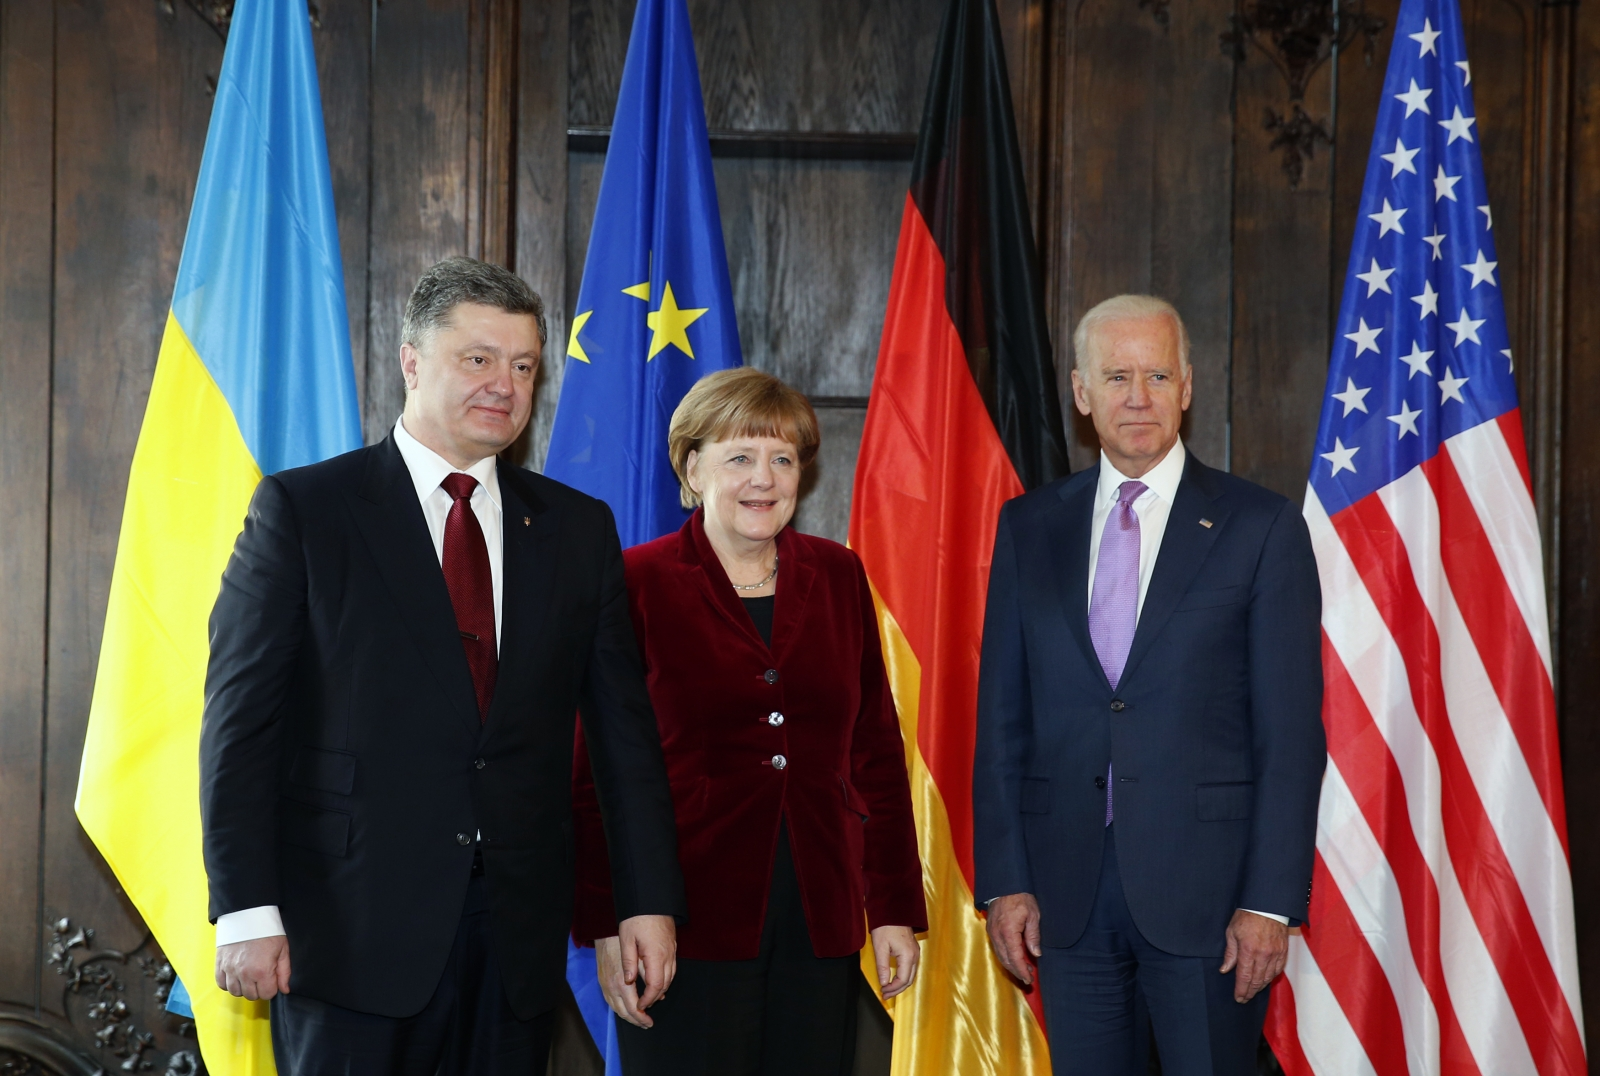 Ukraine's President Petro Poroshenko, German Chancellor Angela Merkel and U.S. Vice President Joe Biden (L-R) pose during the 51st Munich Security Conference